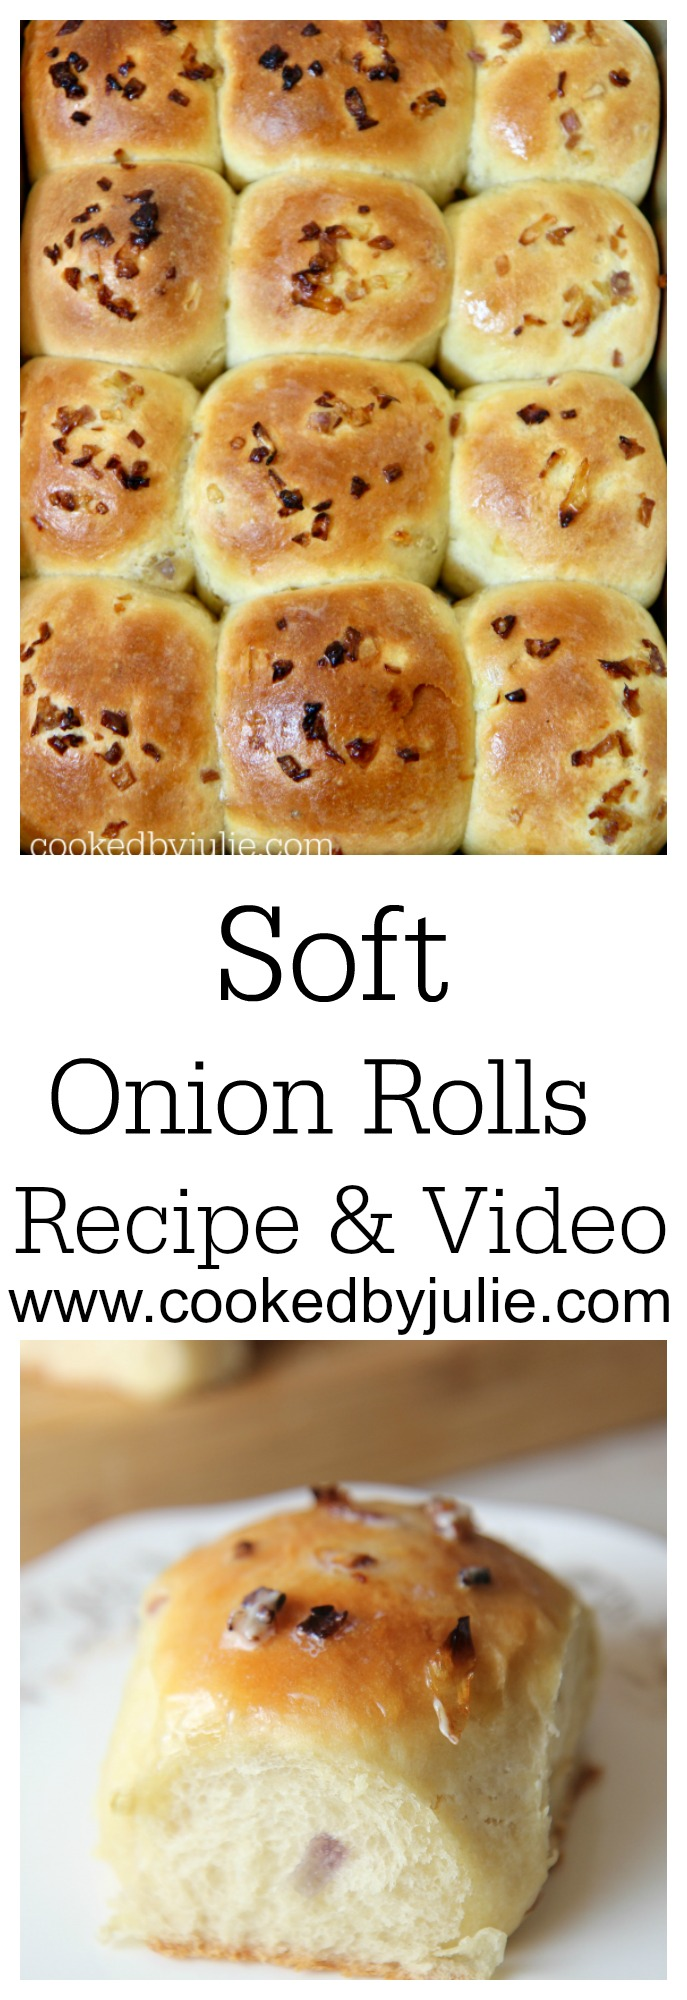 Soft Onion Rolls - Recipe & Video